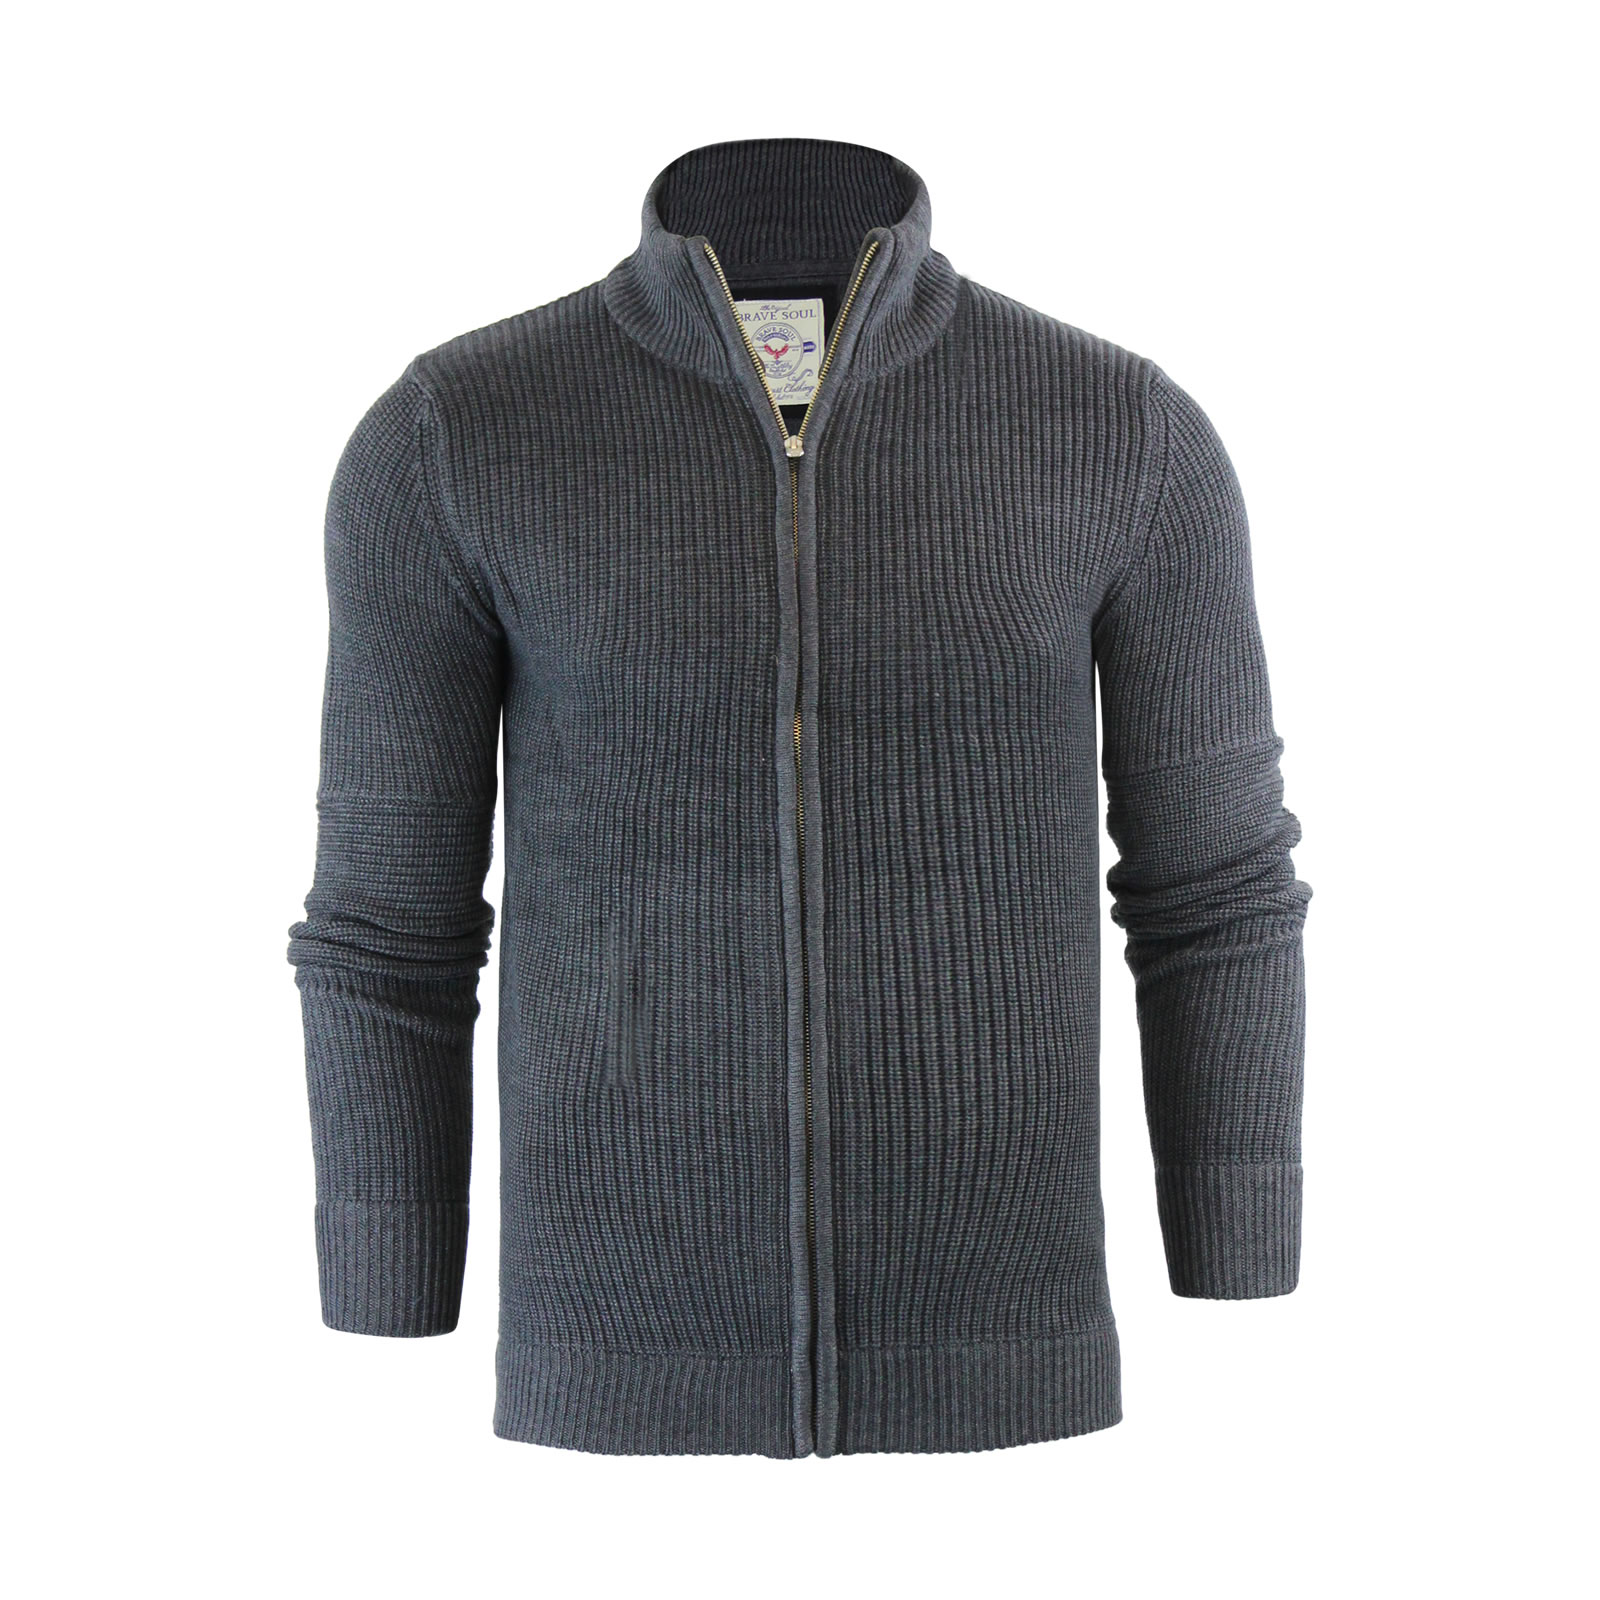 Shop for Men's Performance Fine Gauge Zip Cardigan on Lands End Business Outfitters. Add your company logo using our customization tool!